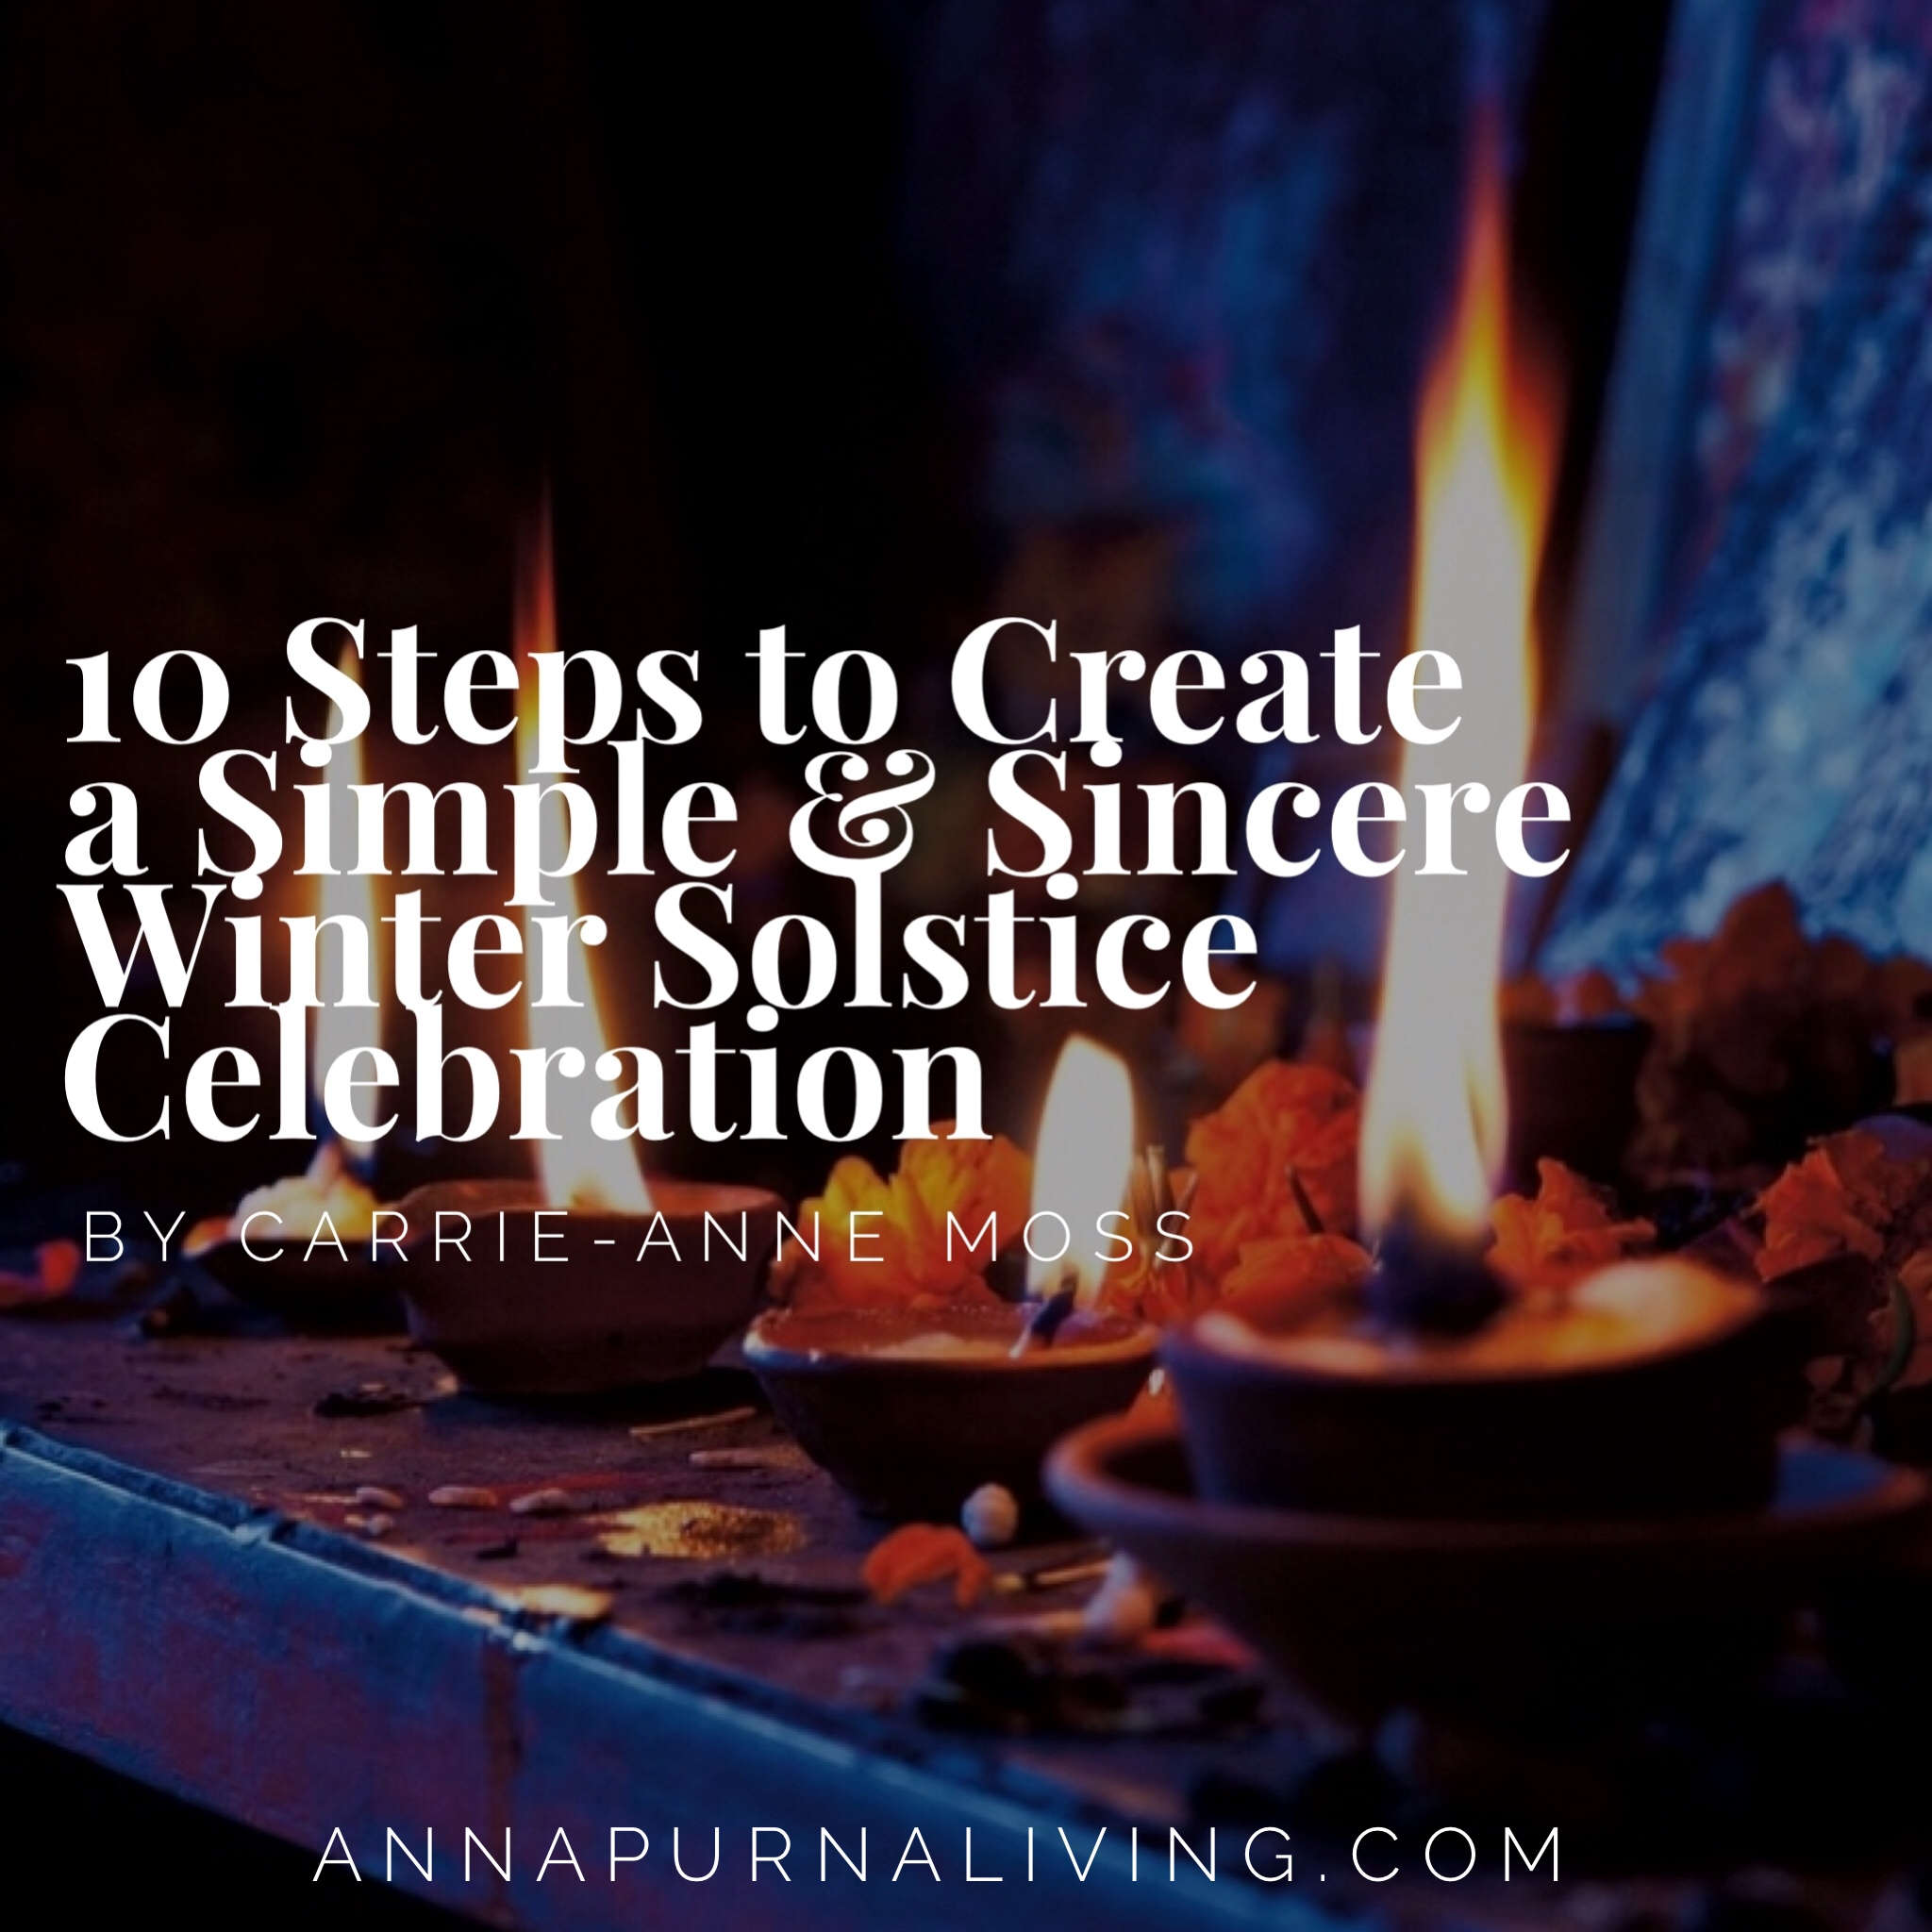 How to Create a Winter Solstice Celebration by Carrie-Anne Moss via AnnapurnaLiving.com